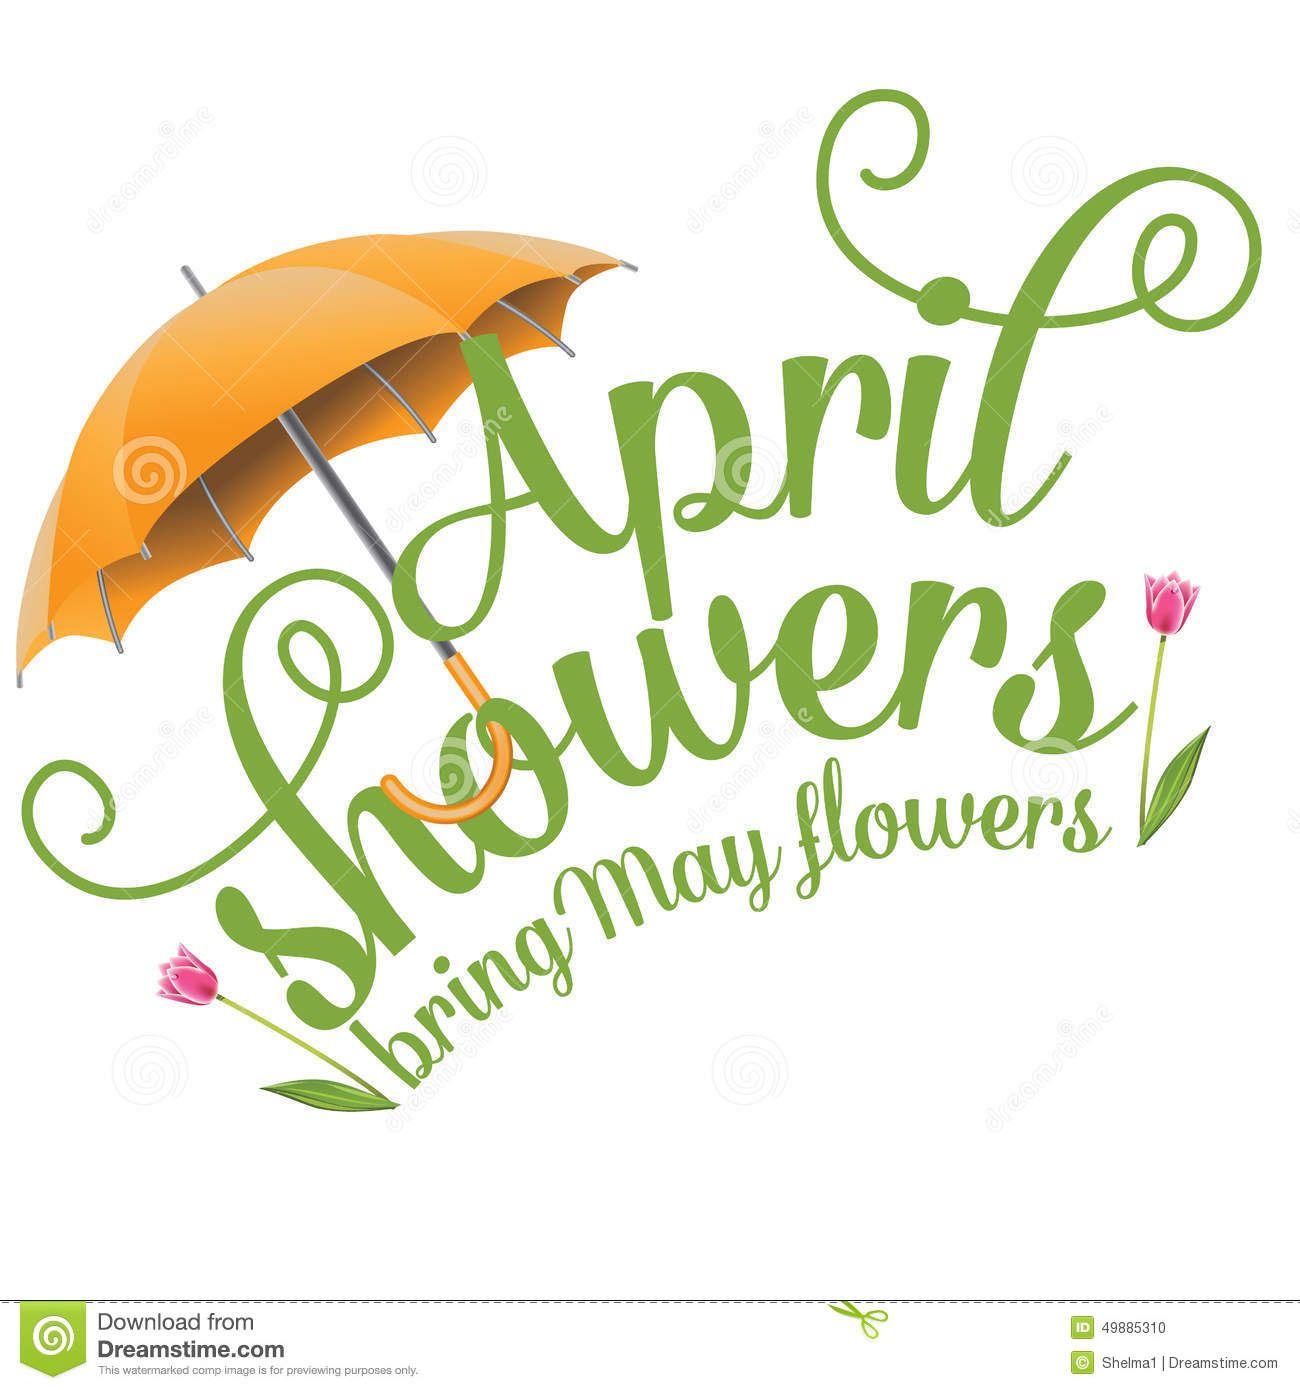 april clip art april showers bring may flowers design stock vector rh pinterest com april showers clip art borders april showers clip art pictures